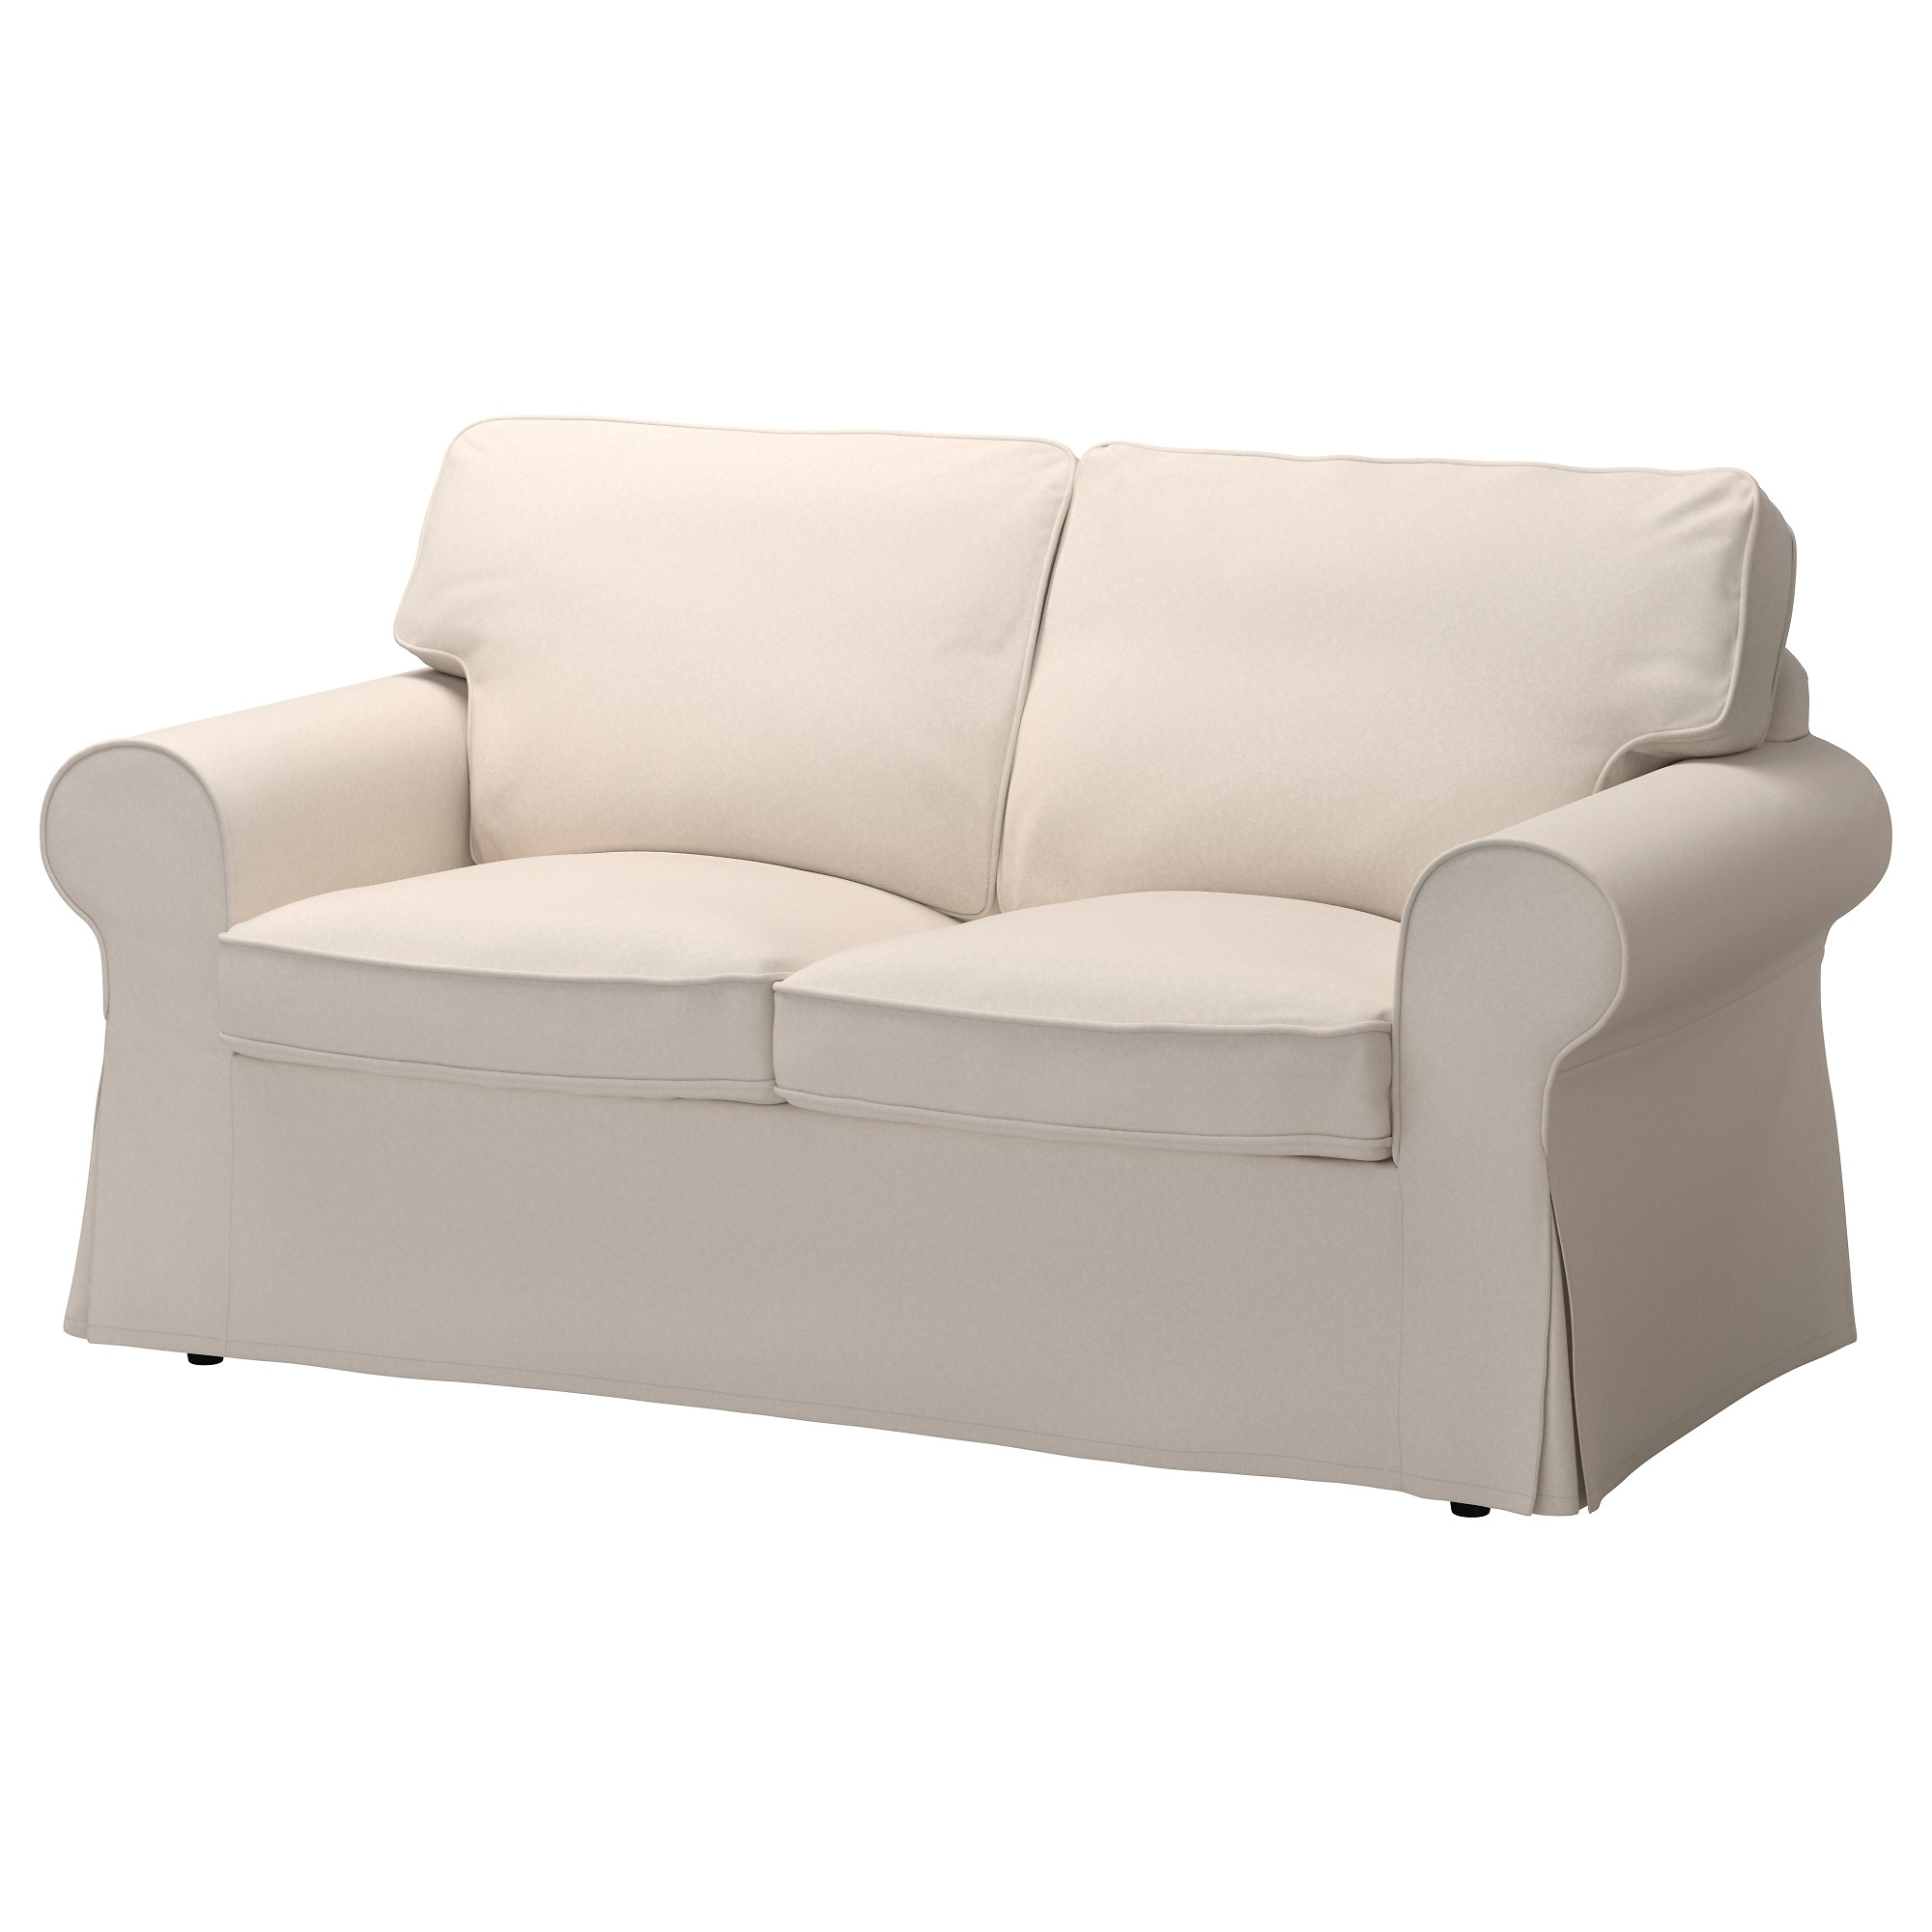 couch loveseats sofa american couches loveseat discount rust living red sofas factory select freight rooms